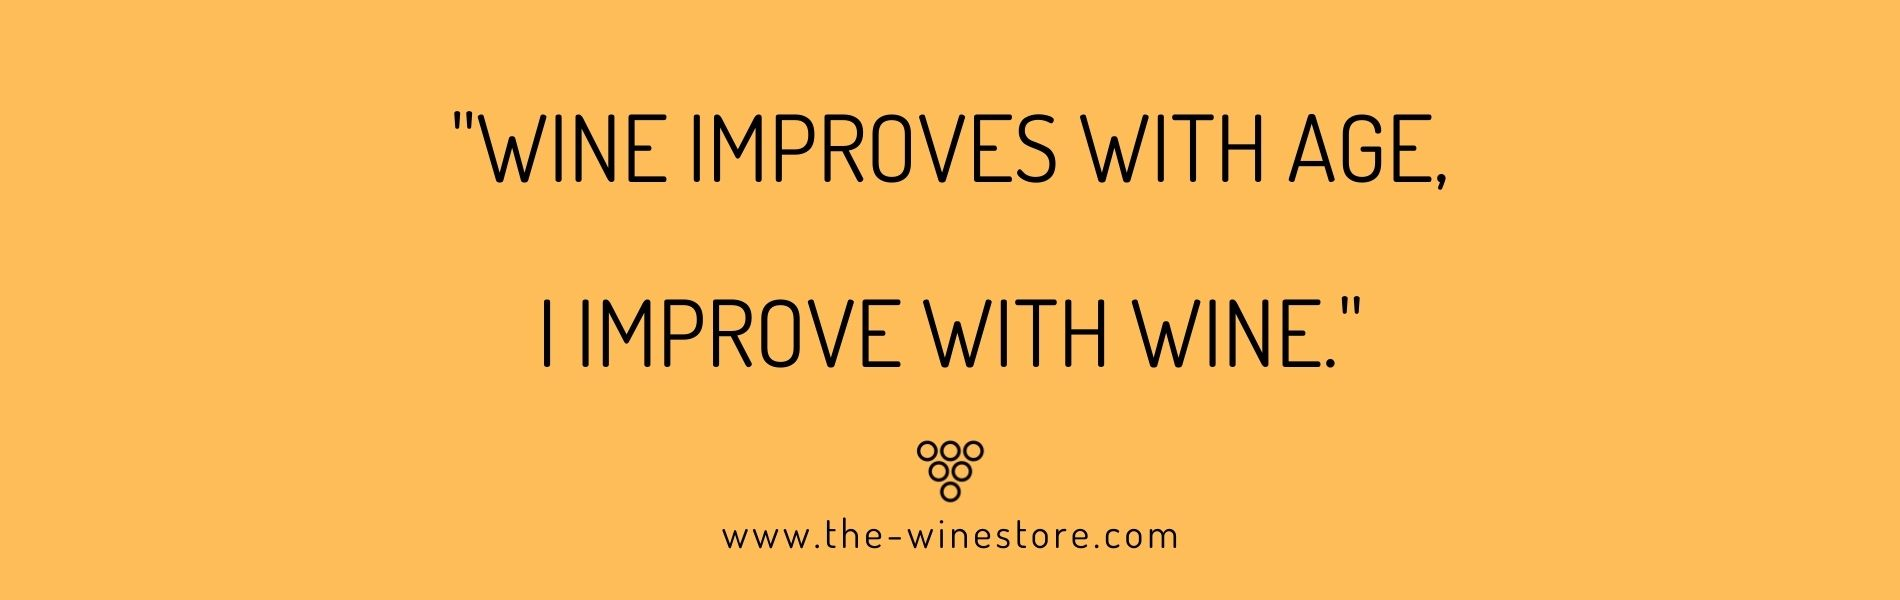 Wine Quote Wine improves with age